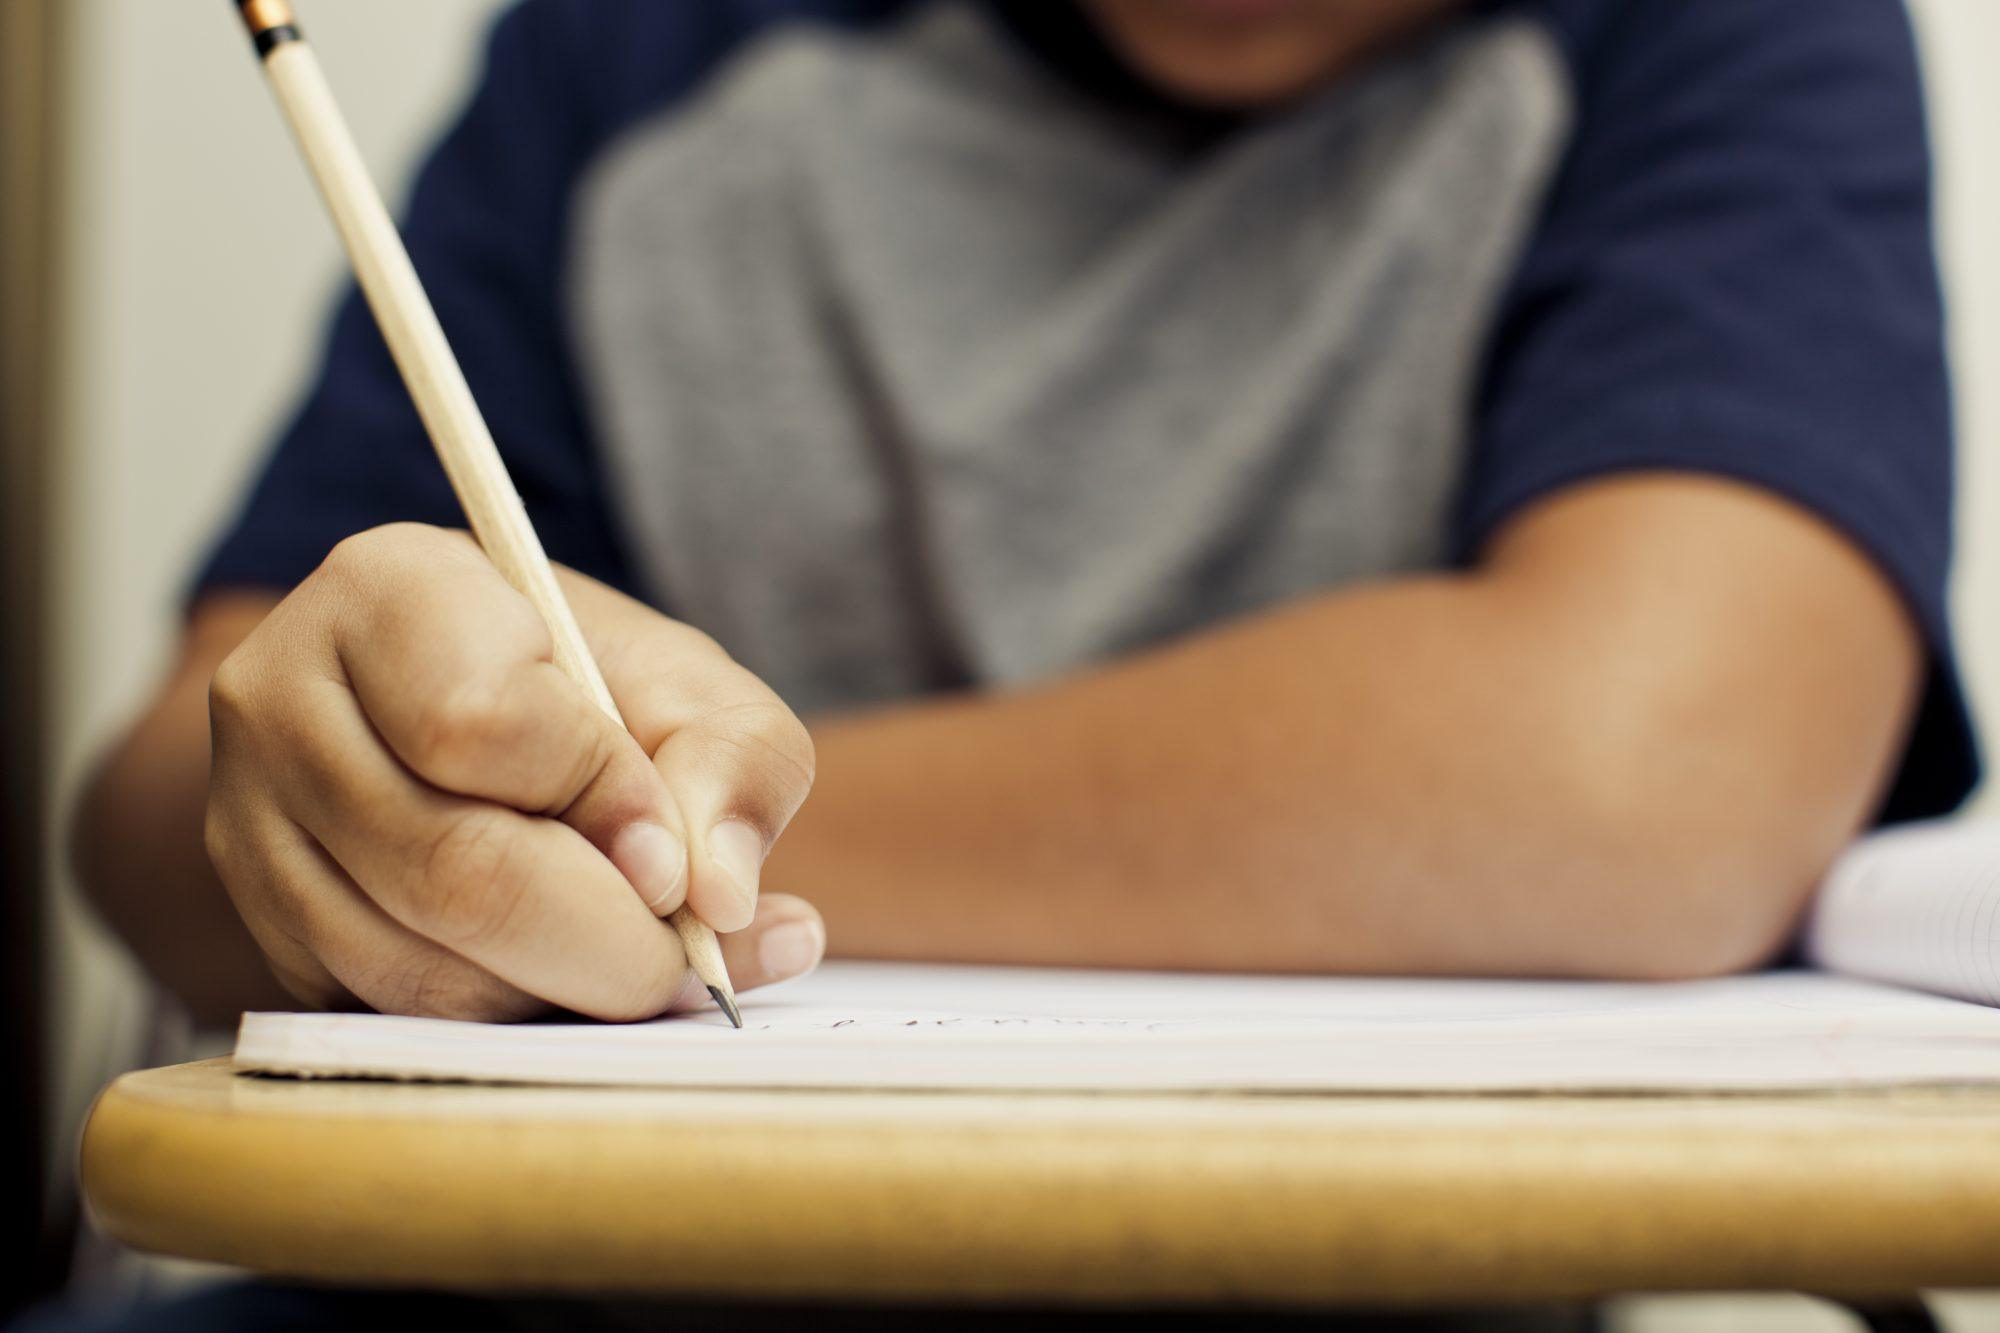 WATCH: Mama Was Right! Study Shows Students Learn Better When They Take Handwritten Notes